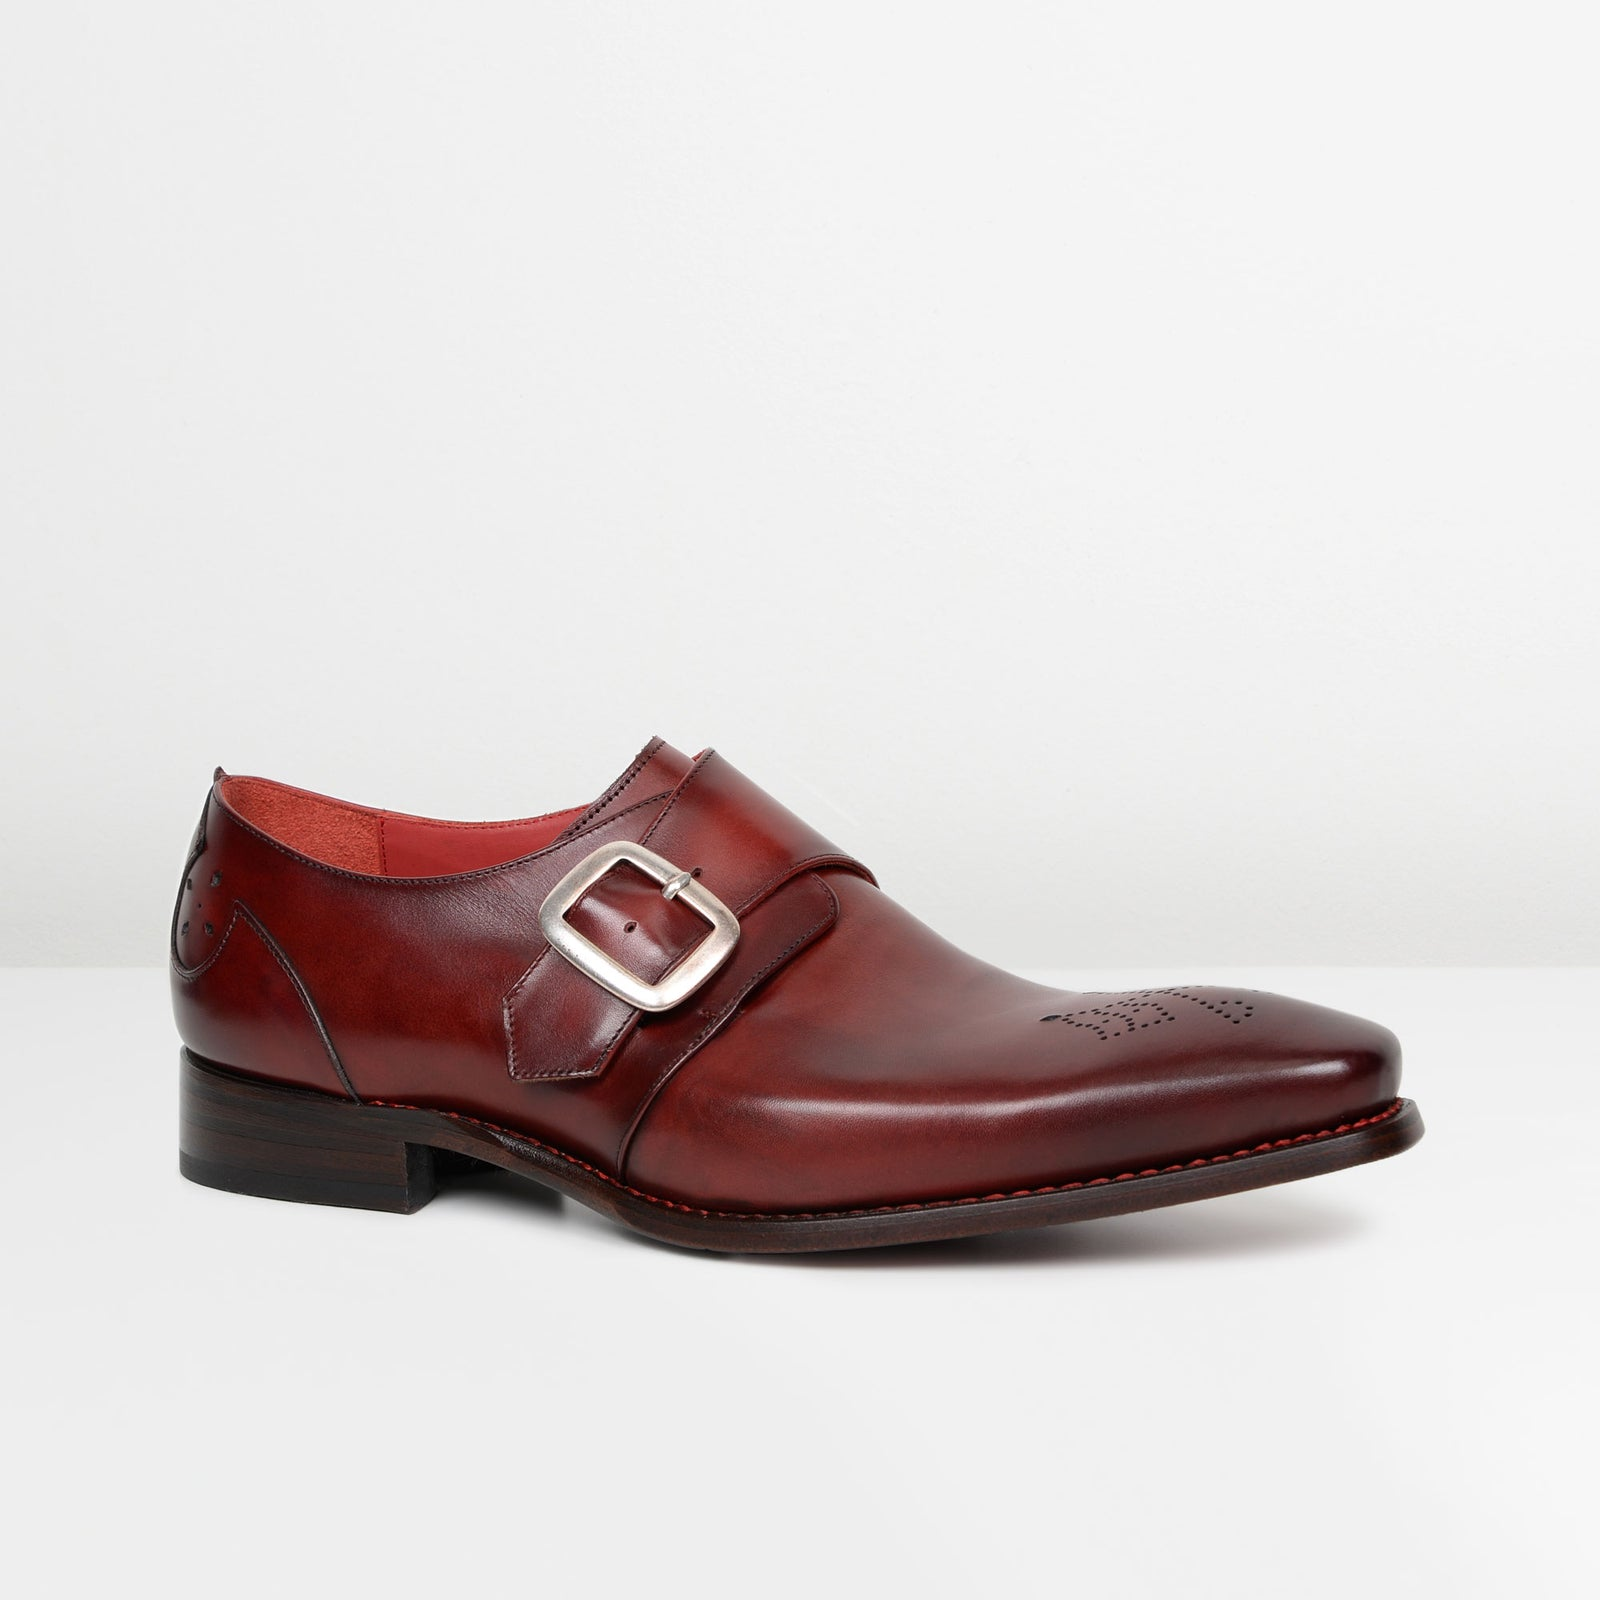 Grugna Shadow Hunger 'Headstone' Monk Strap Shoes